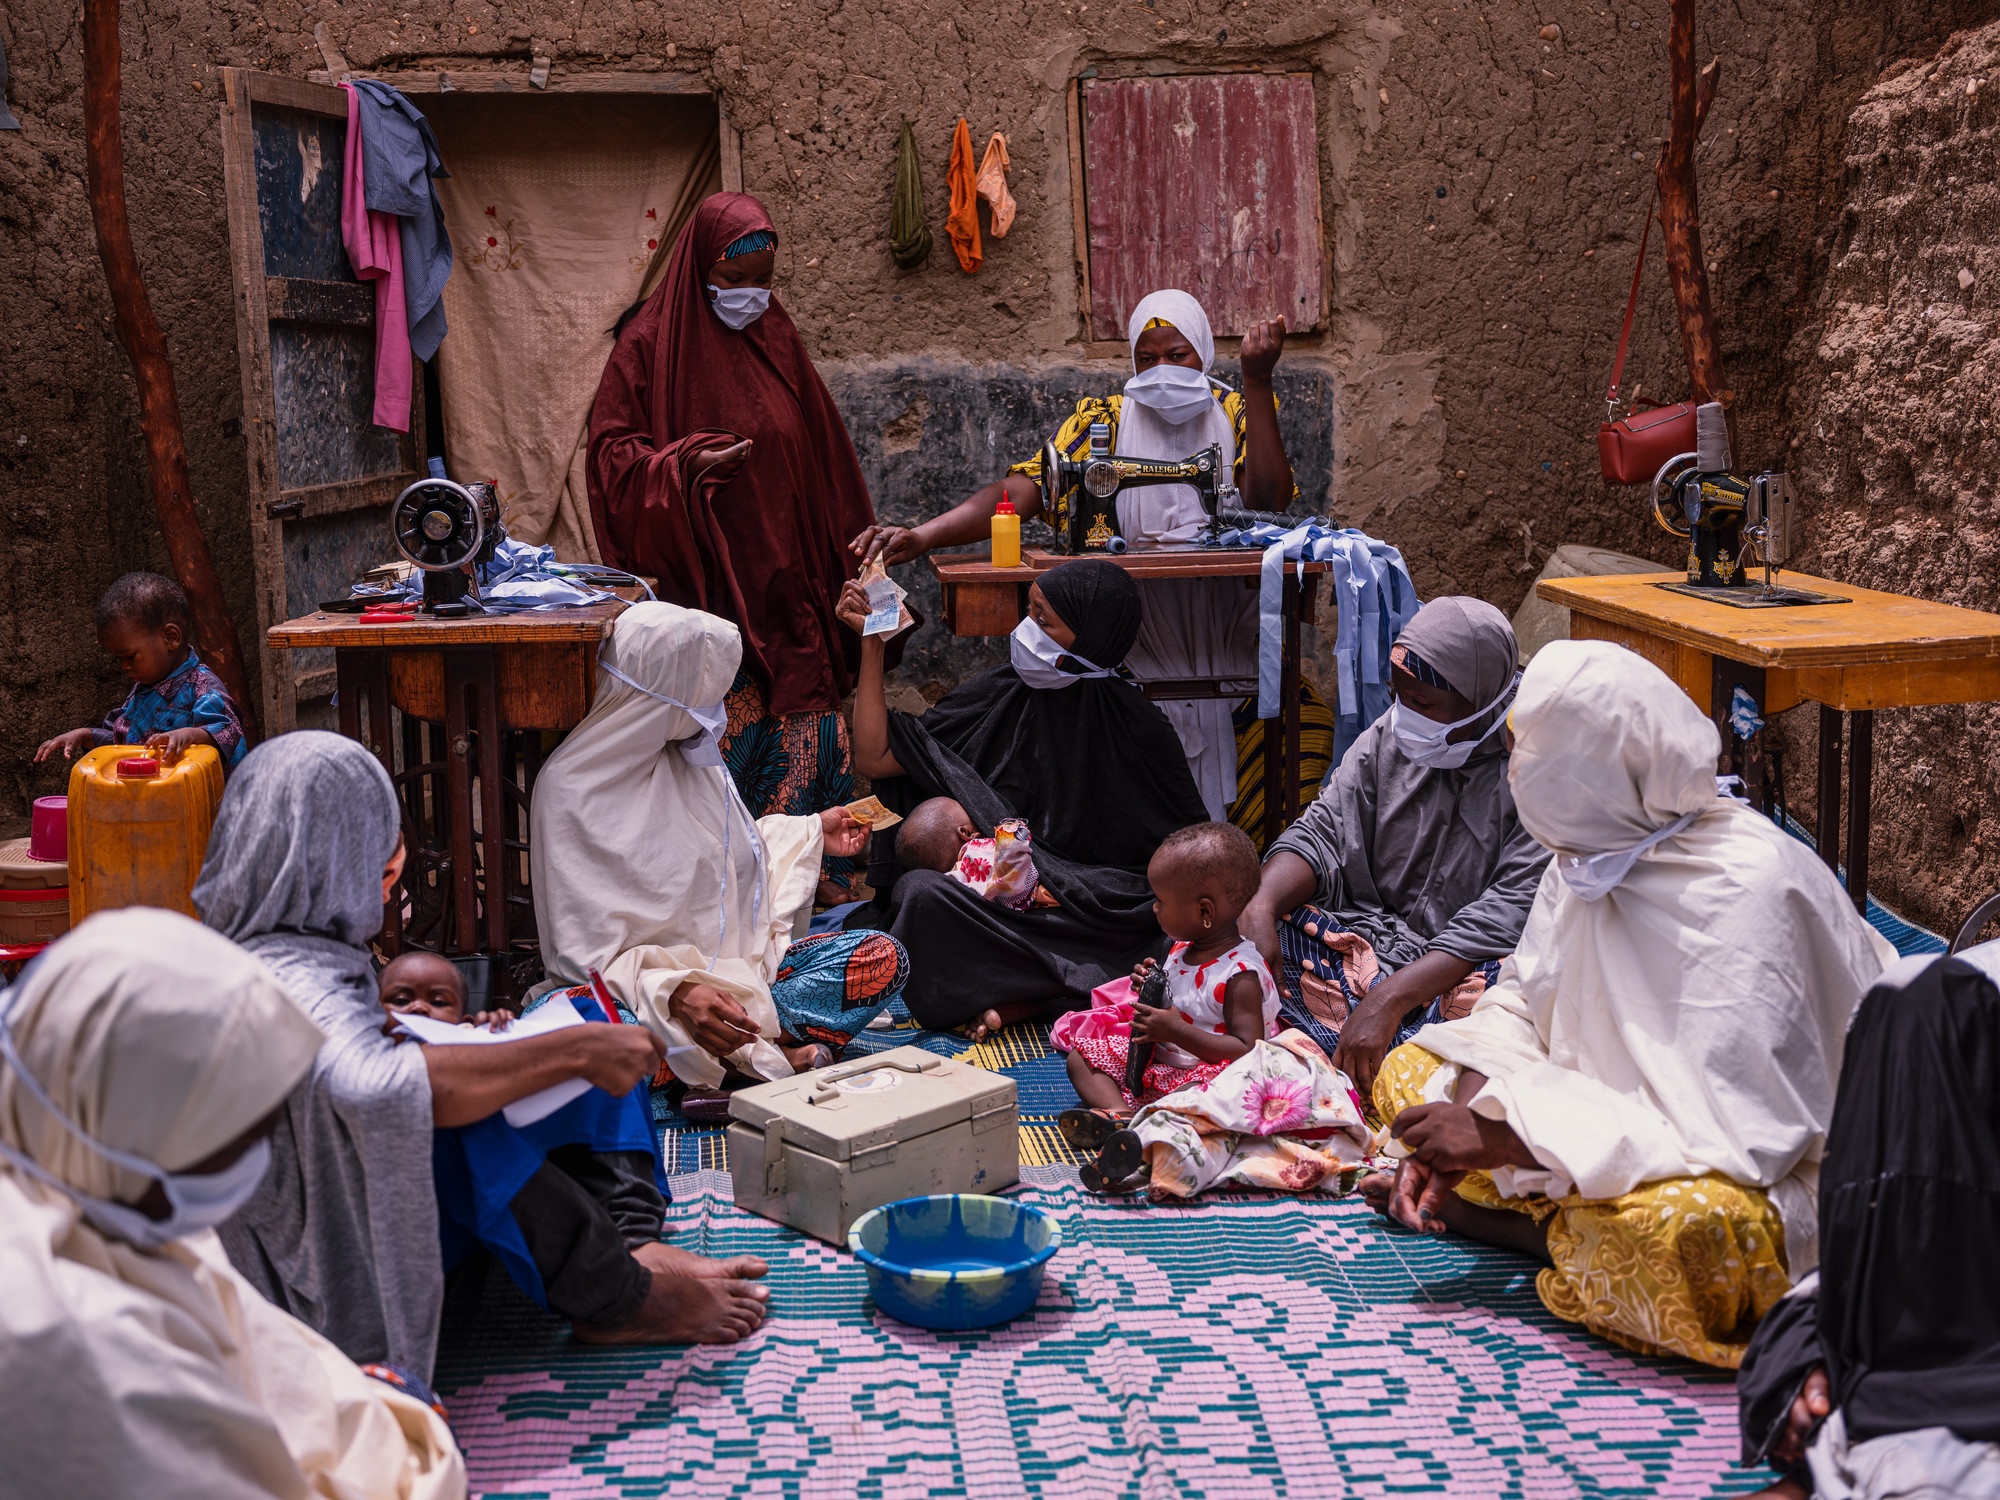 A group of women sit on the floor in front of several tables with sewing machines in Niger. A metal bank box is in the center of the group.